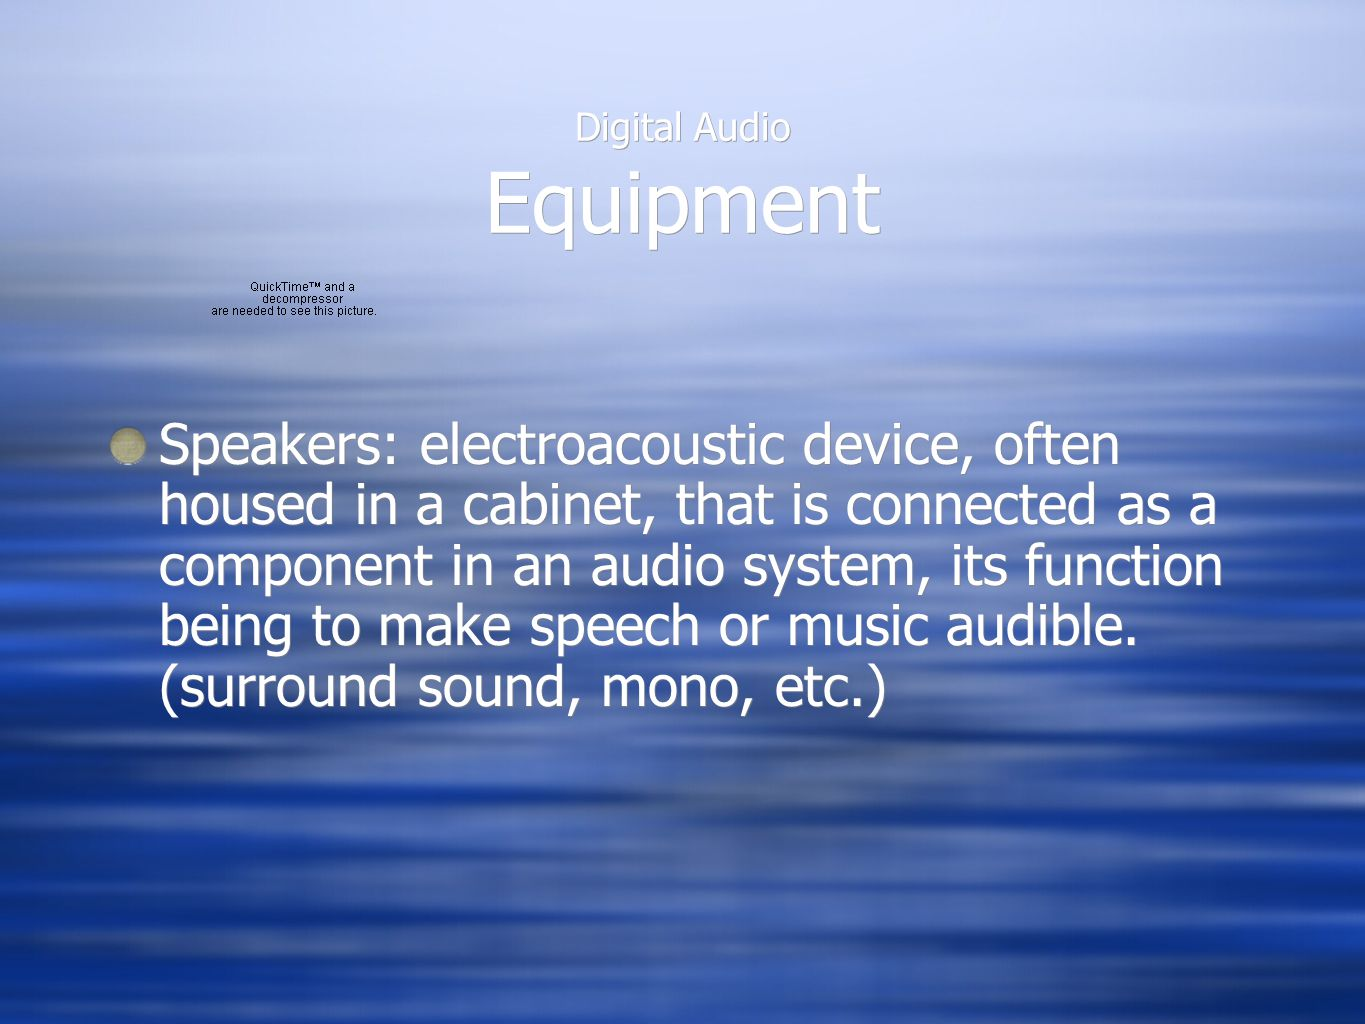 Digital Audio Equipment Speakers: electroacoustic device, often housed in a cabinet, that is connected as a component in an audio system, its function being to make speech or music audible.